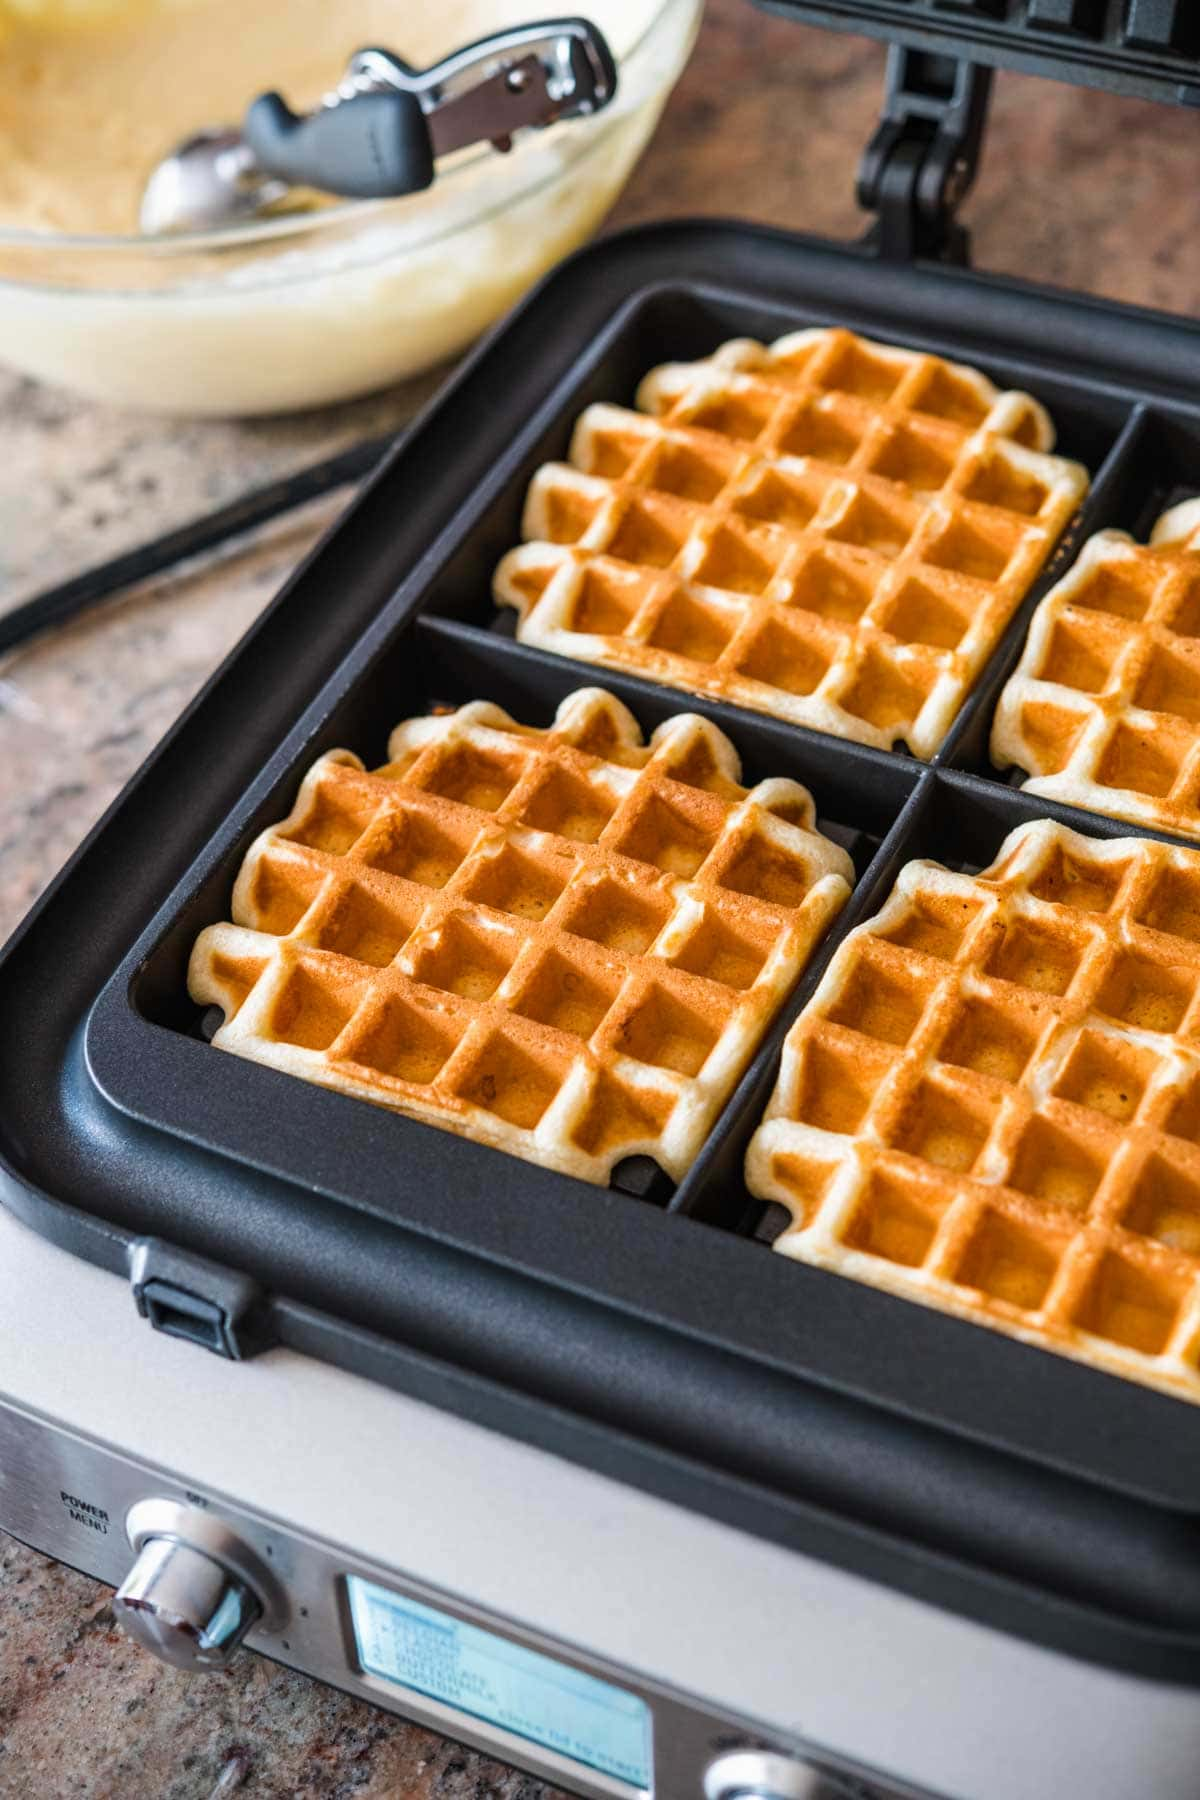 Cooked Classic Waffles in waffle iron